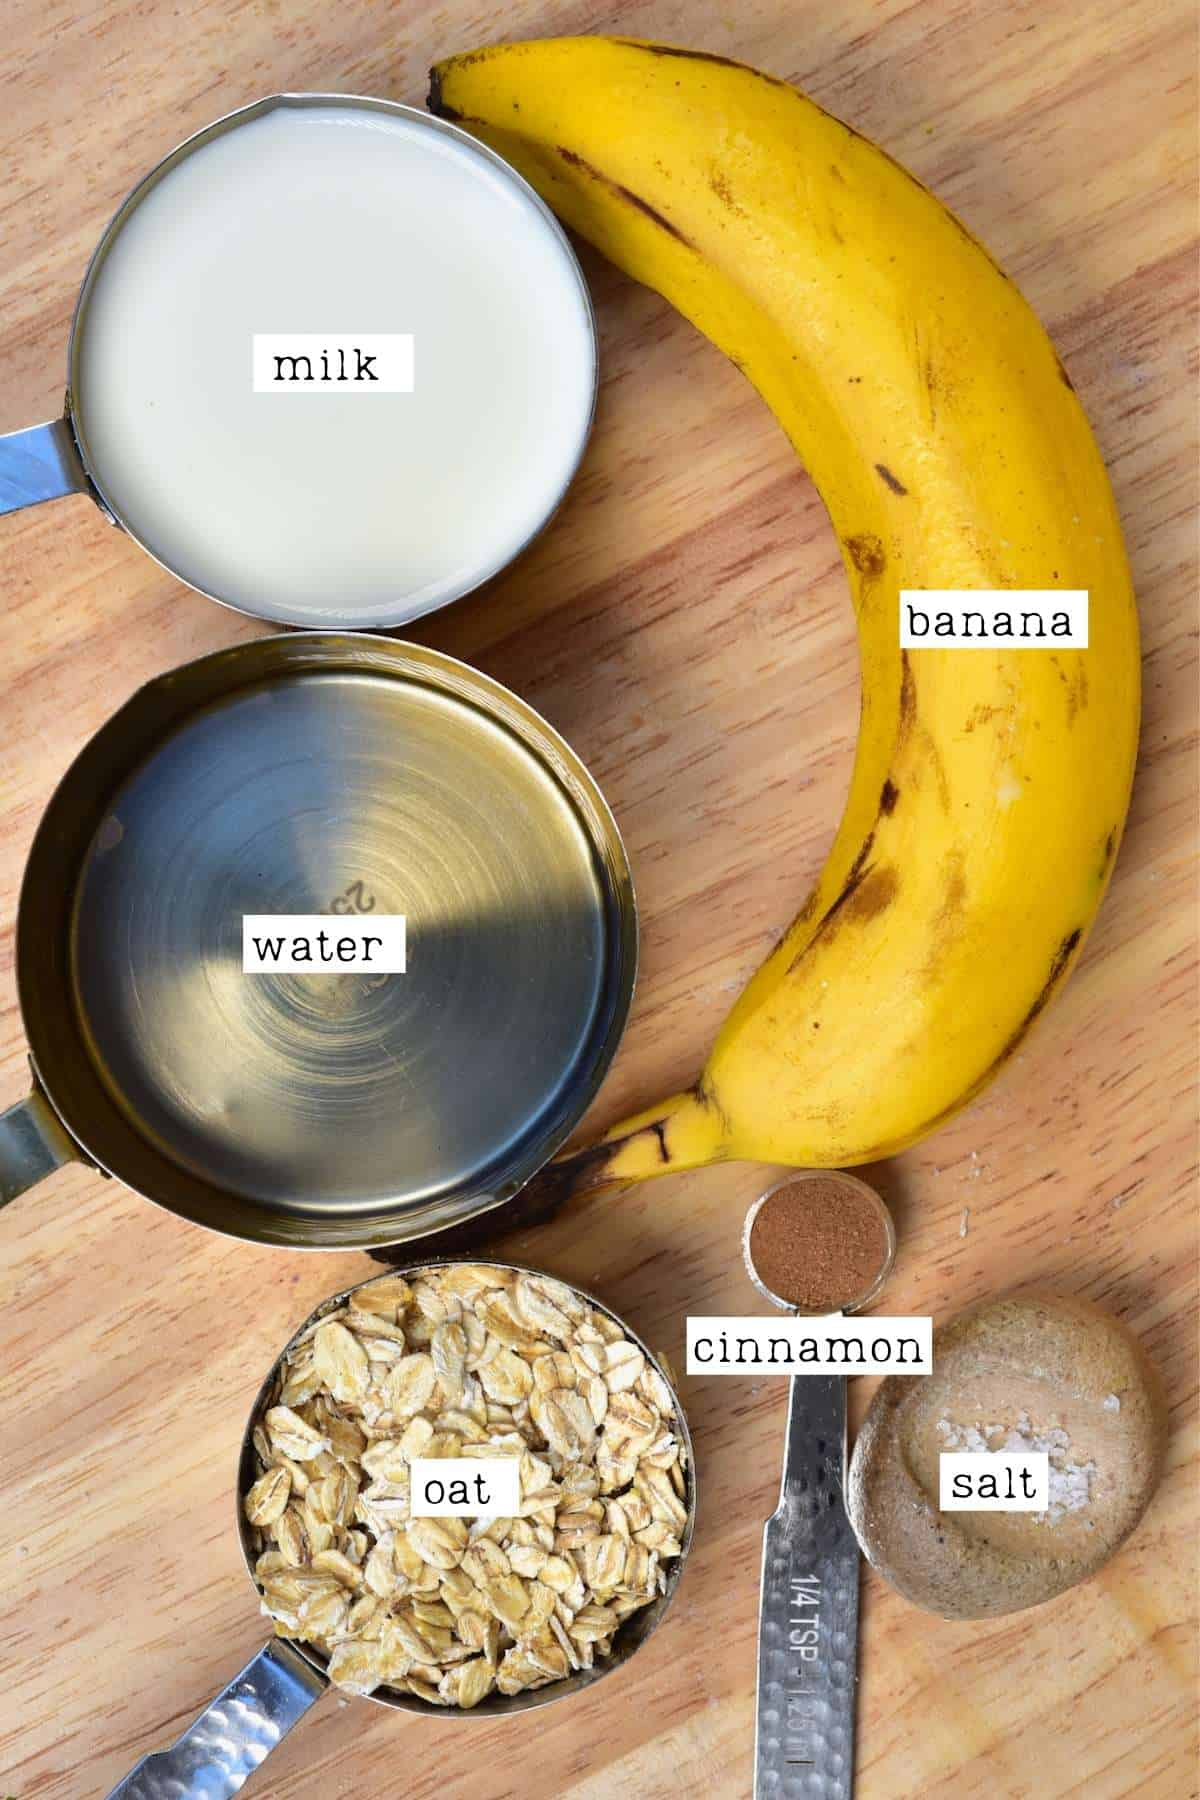 Ingredients for banana oatmeal